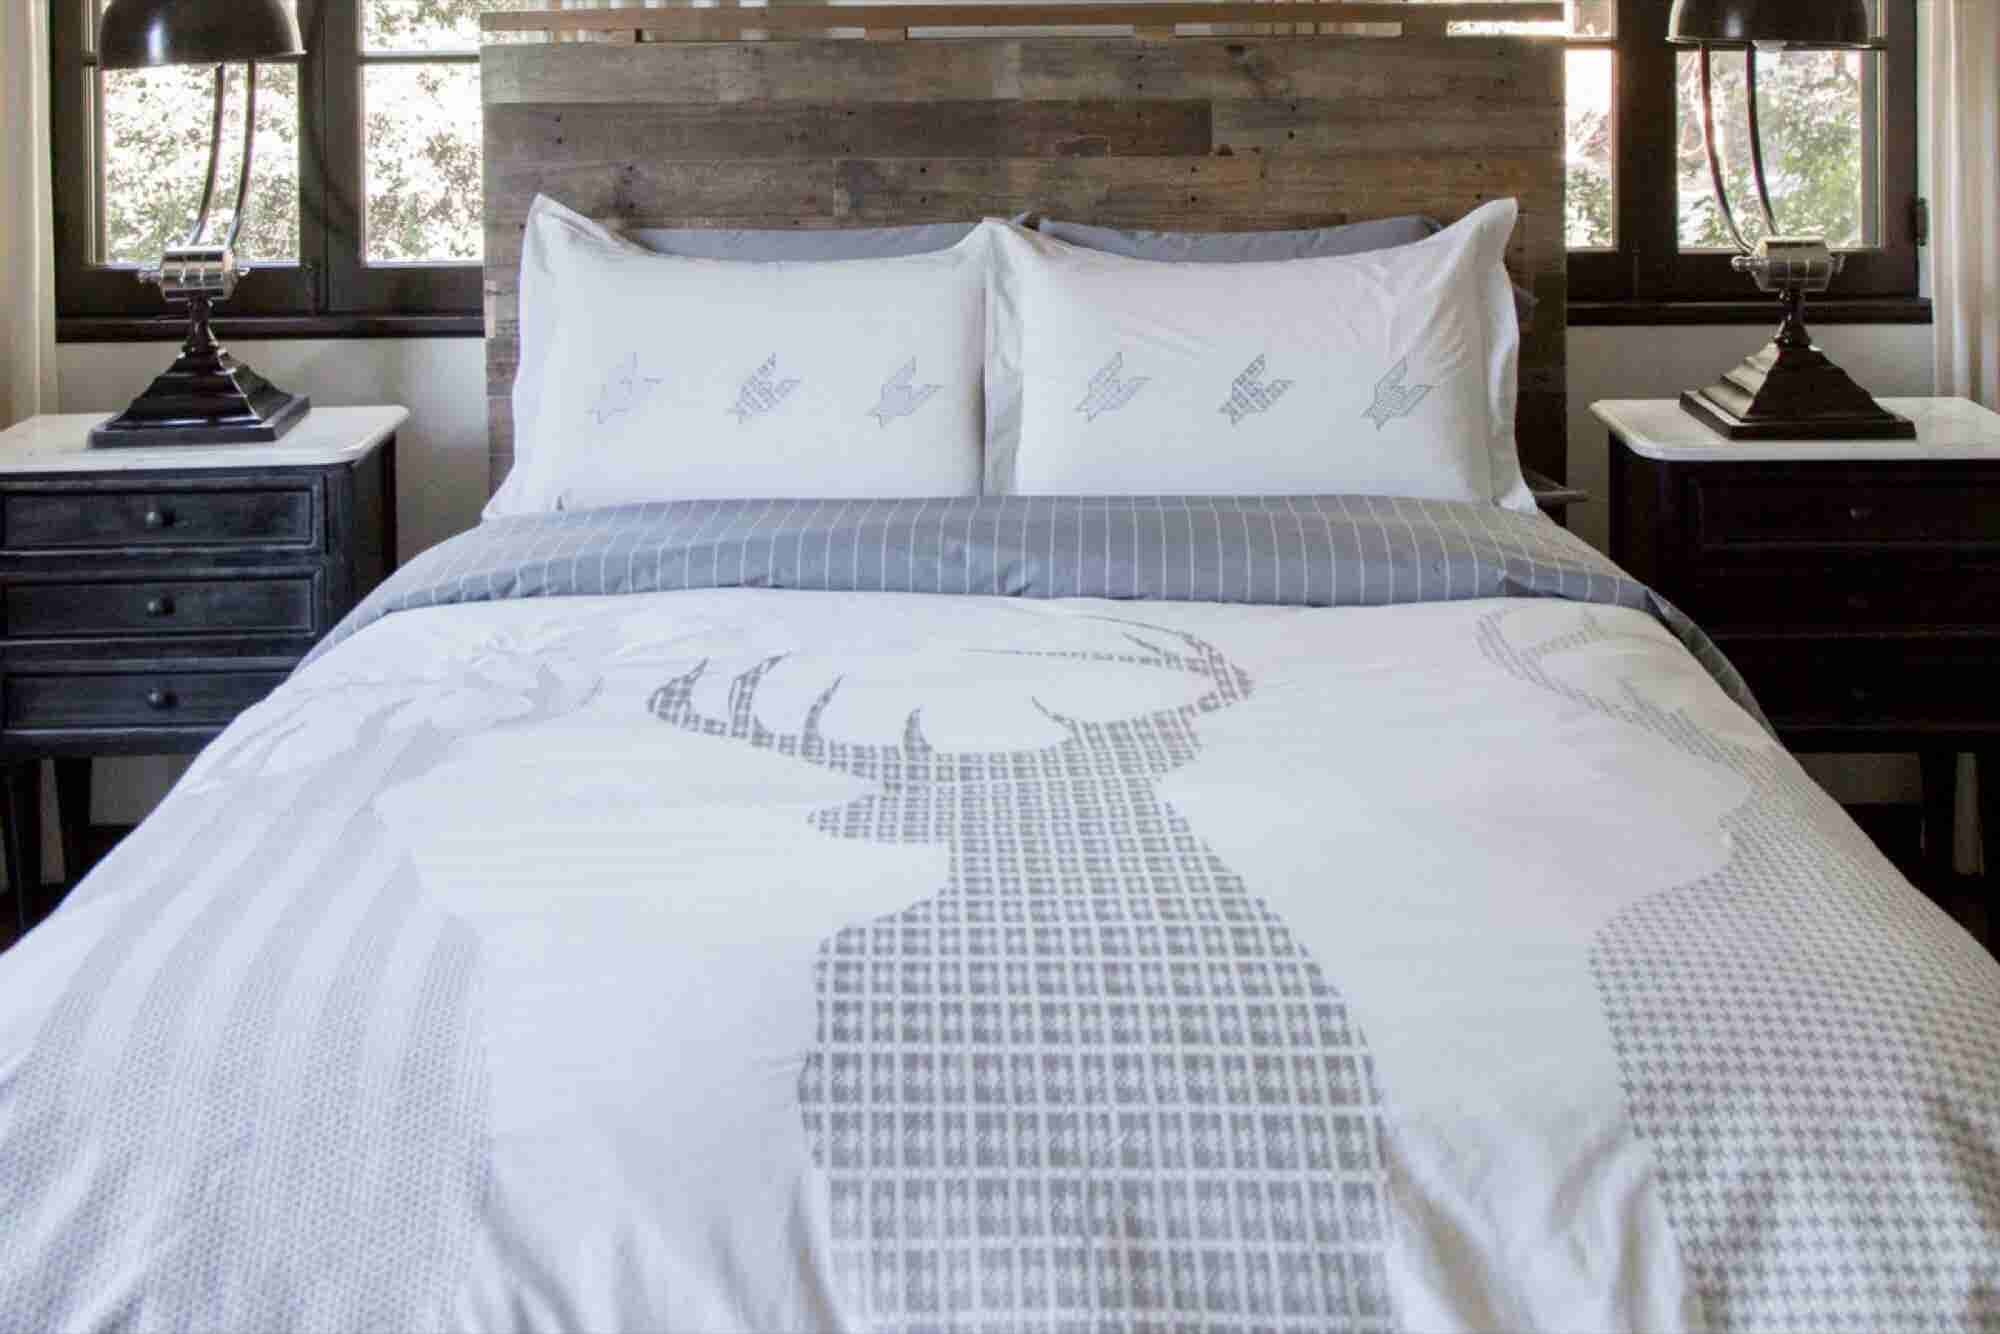 Bedding With a Masculine Bent? This Founder Wants to Reinvent a Category for Men -- Again.